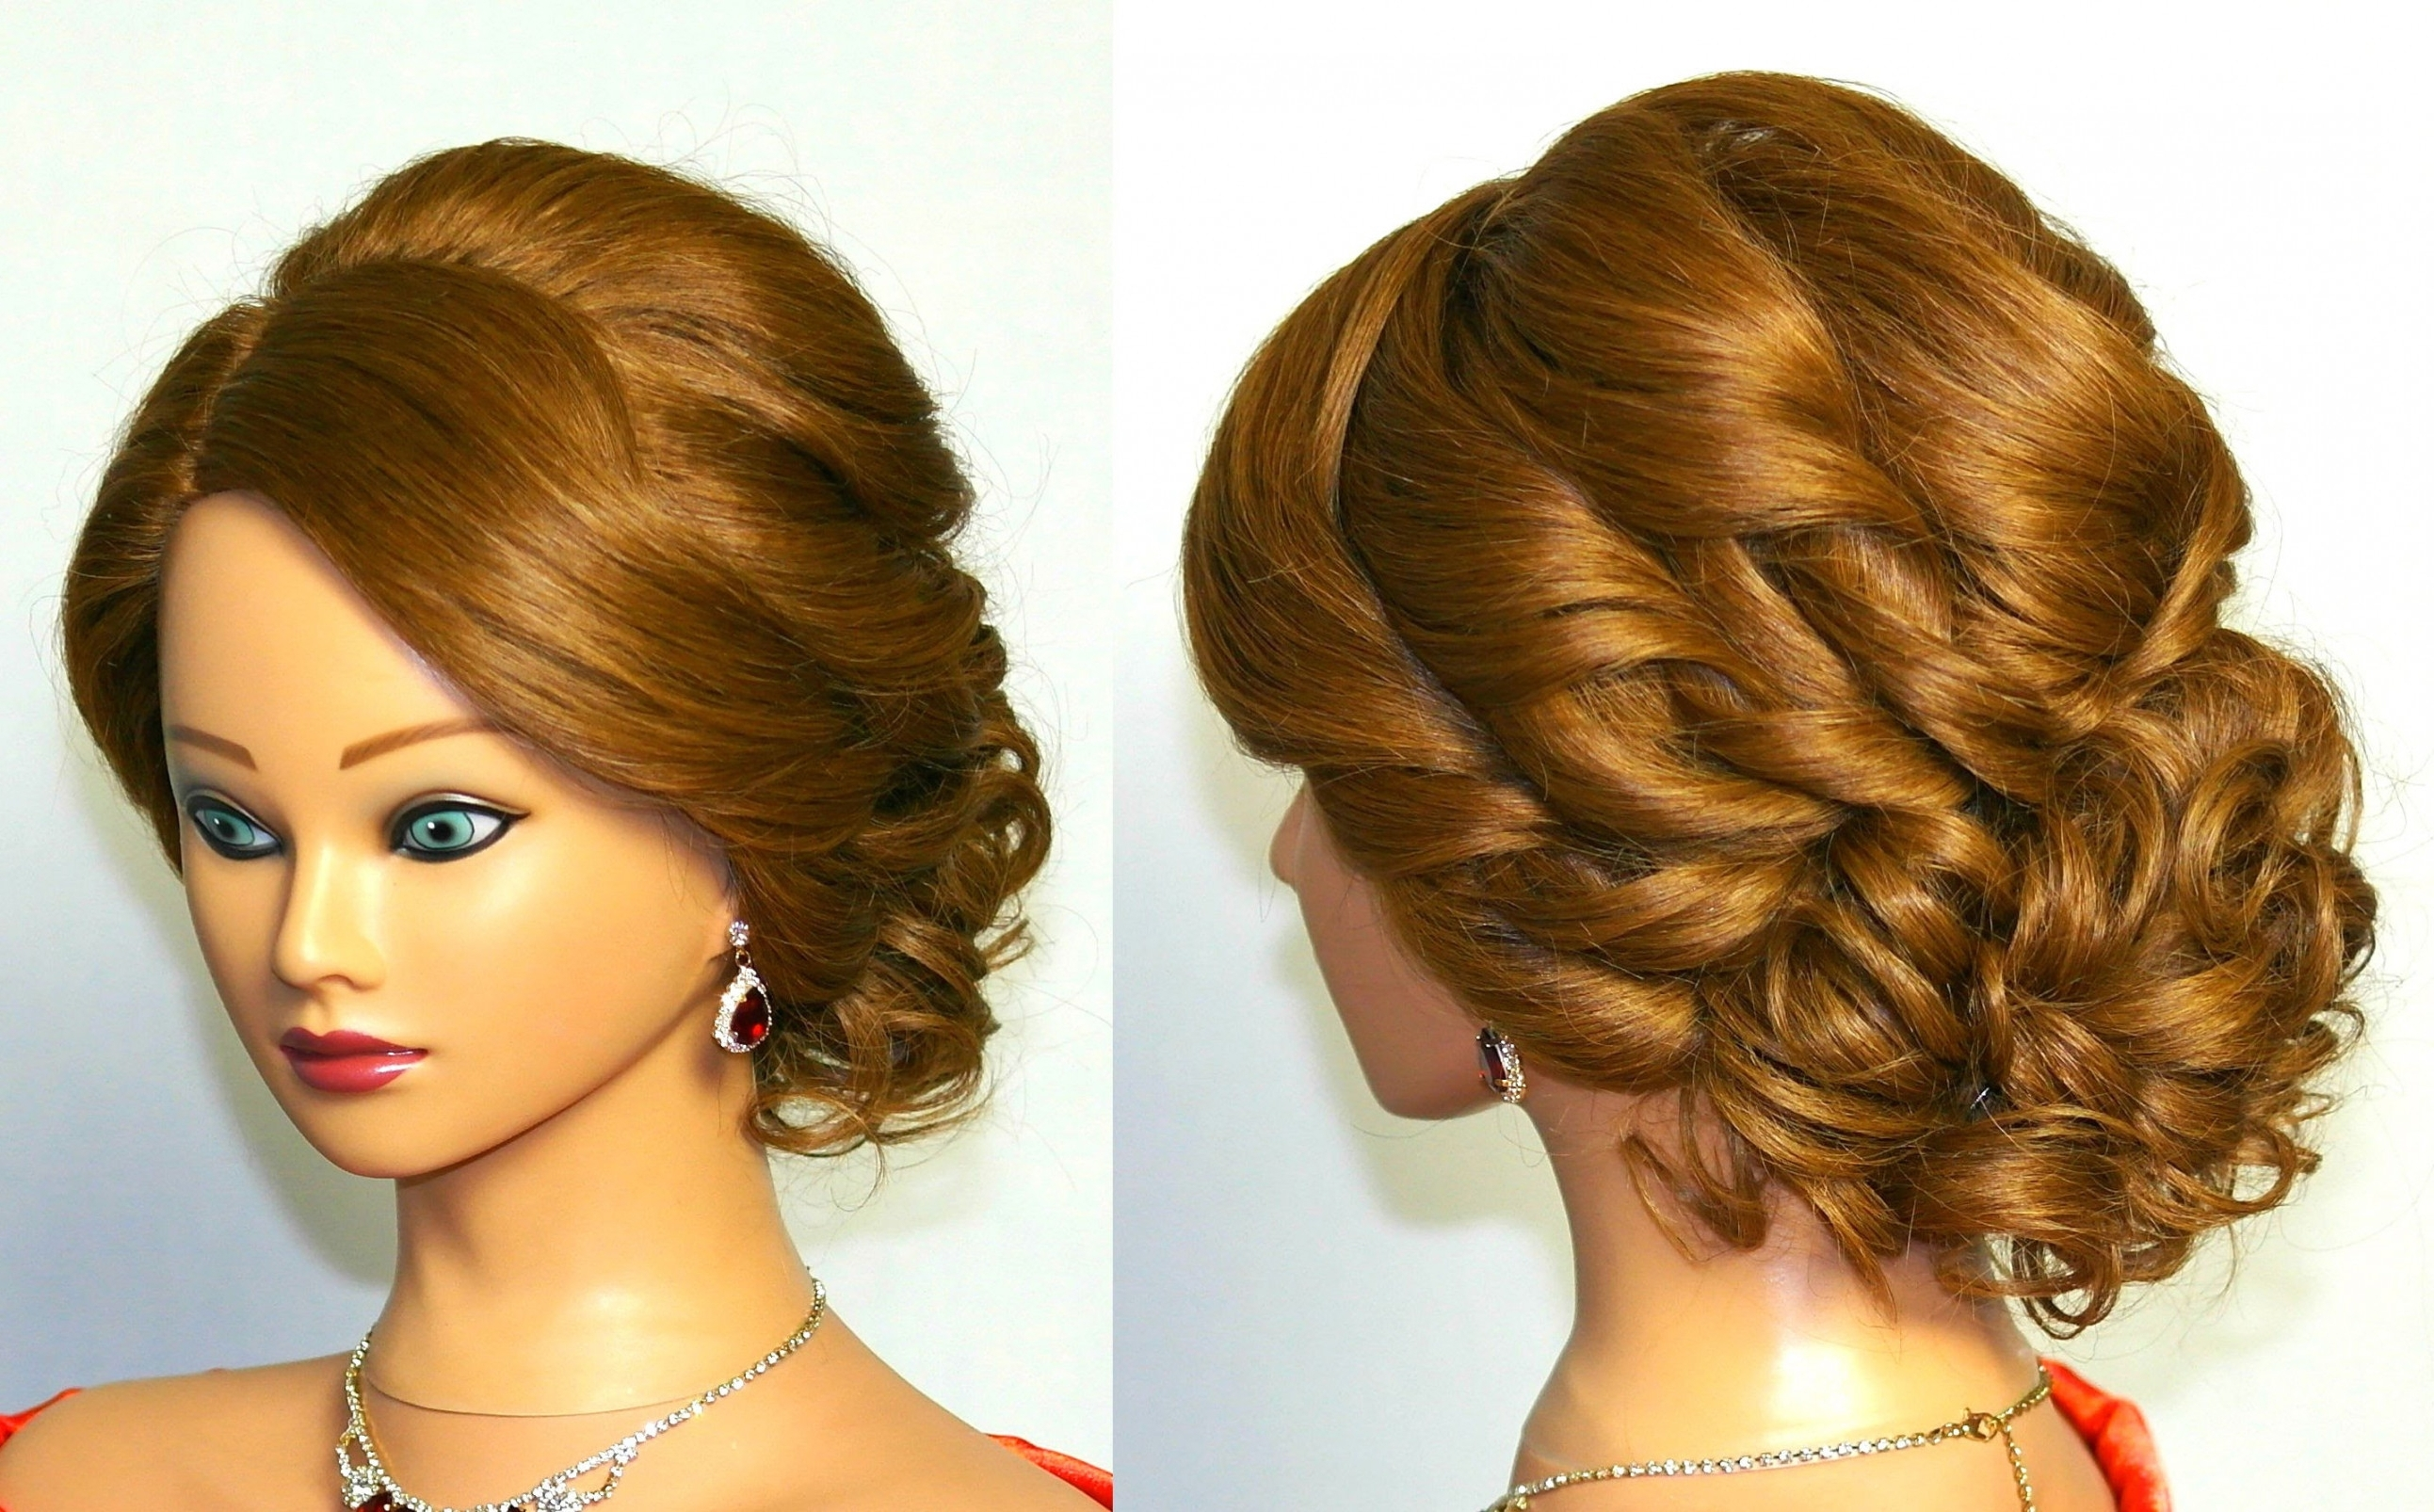 Hair Updo Hairstyles Bridal Curly Updo Hairstyle For Medium Hair Intended For Updo Hairstyles For Medium Hair (View 7 of 15)